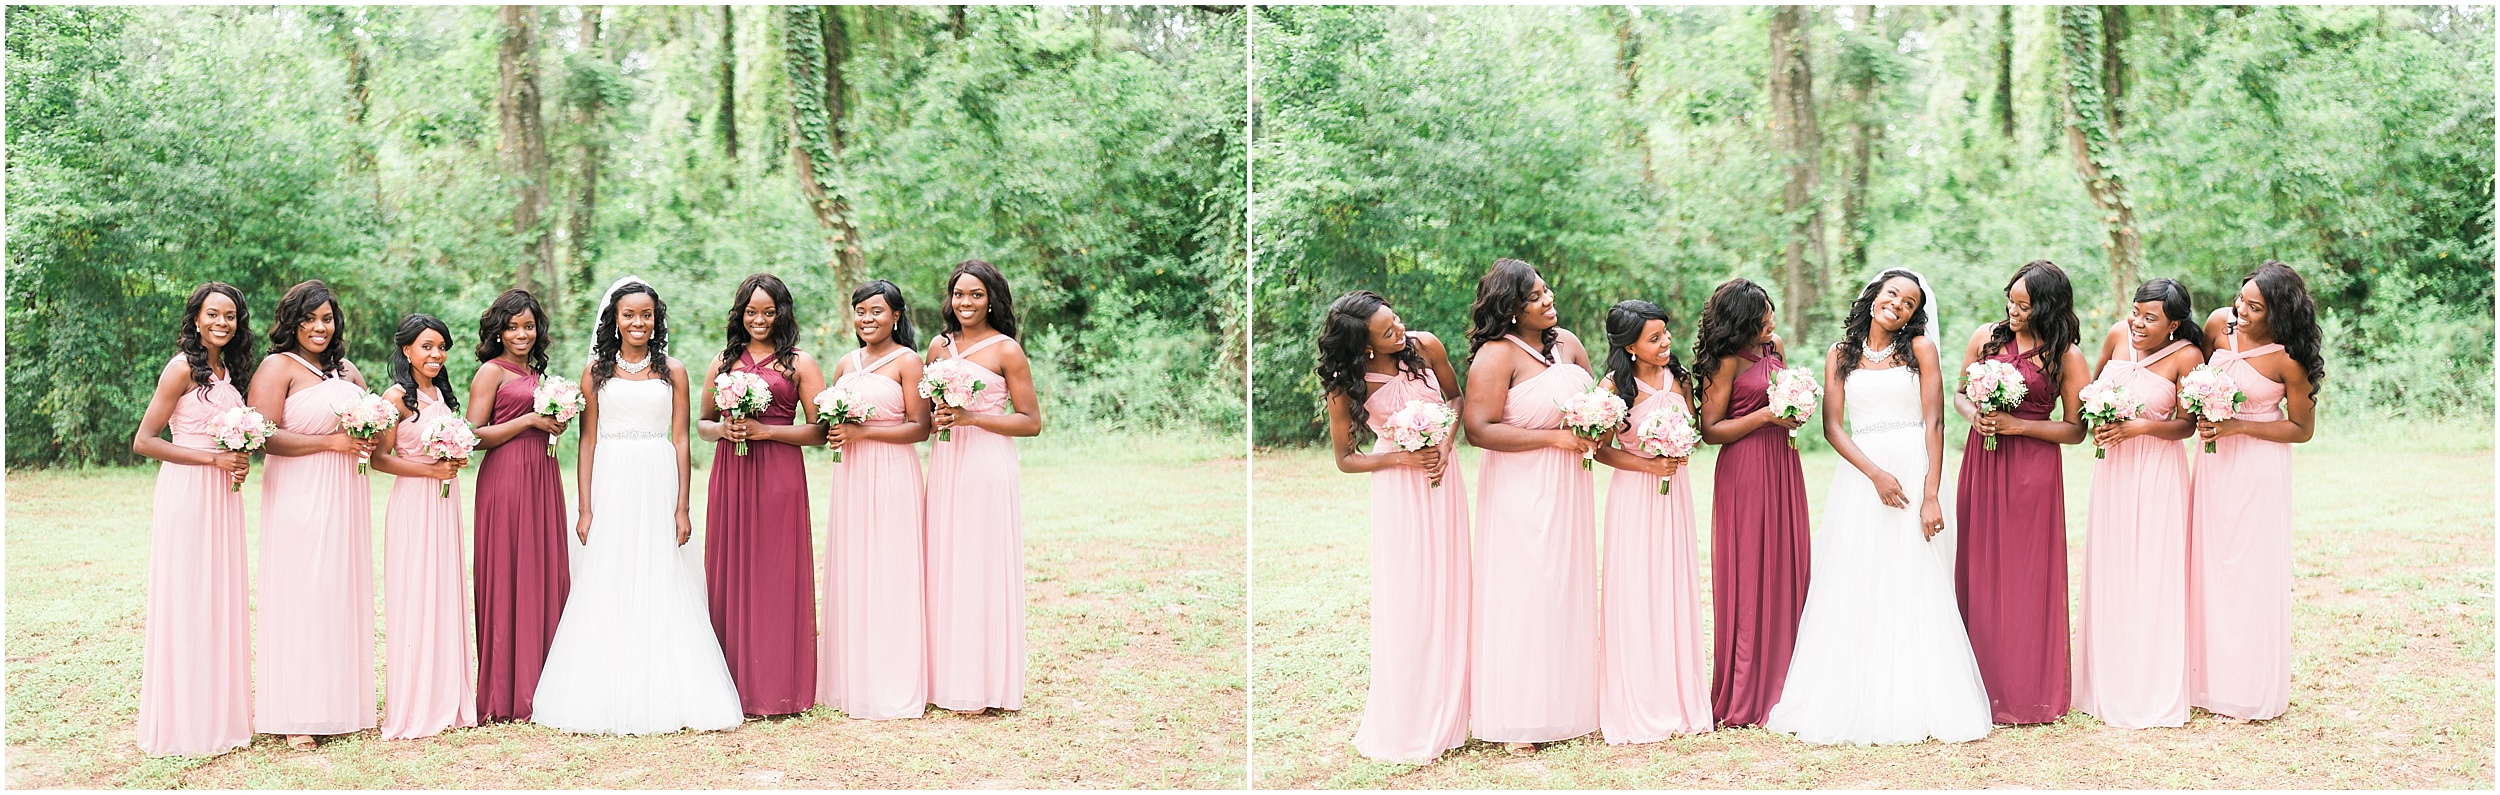 Tallahassee Florida Wedding Photographer, Therline & Jerry Wedding at Restoration Place, Tallahassee Florida_0020.jpg